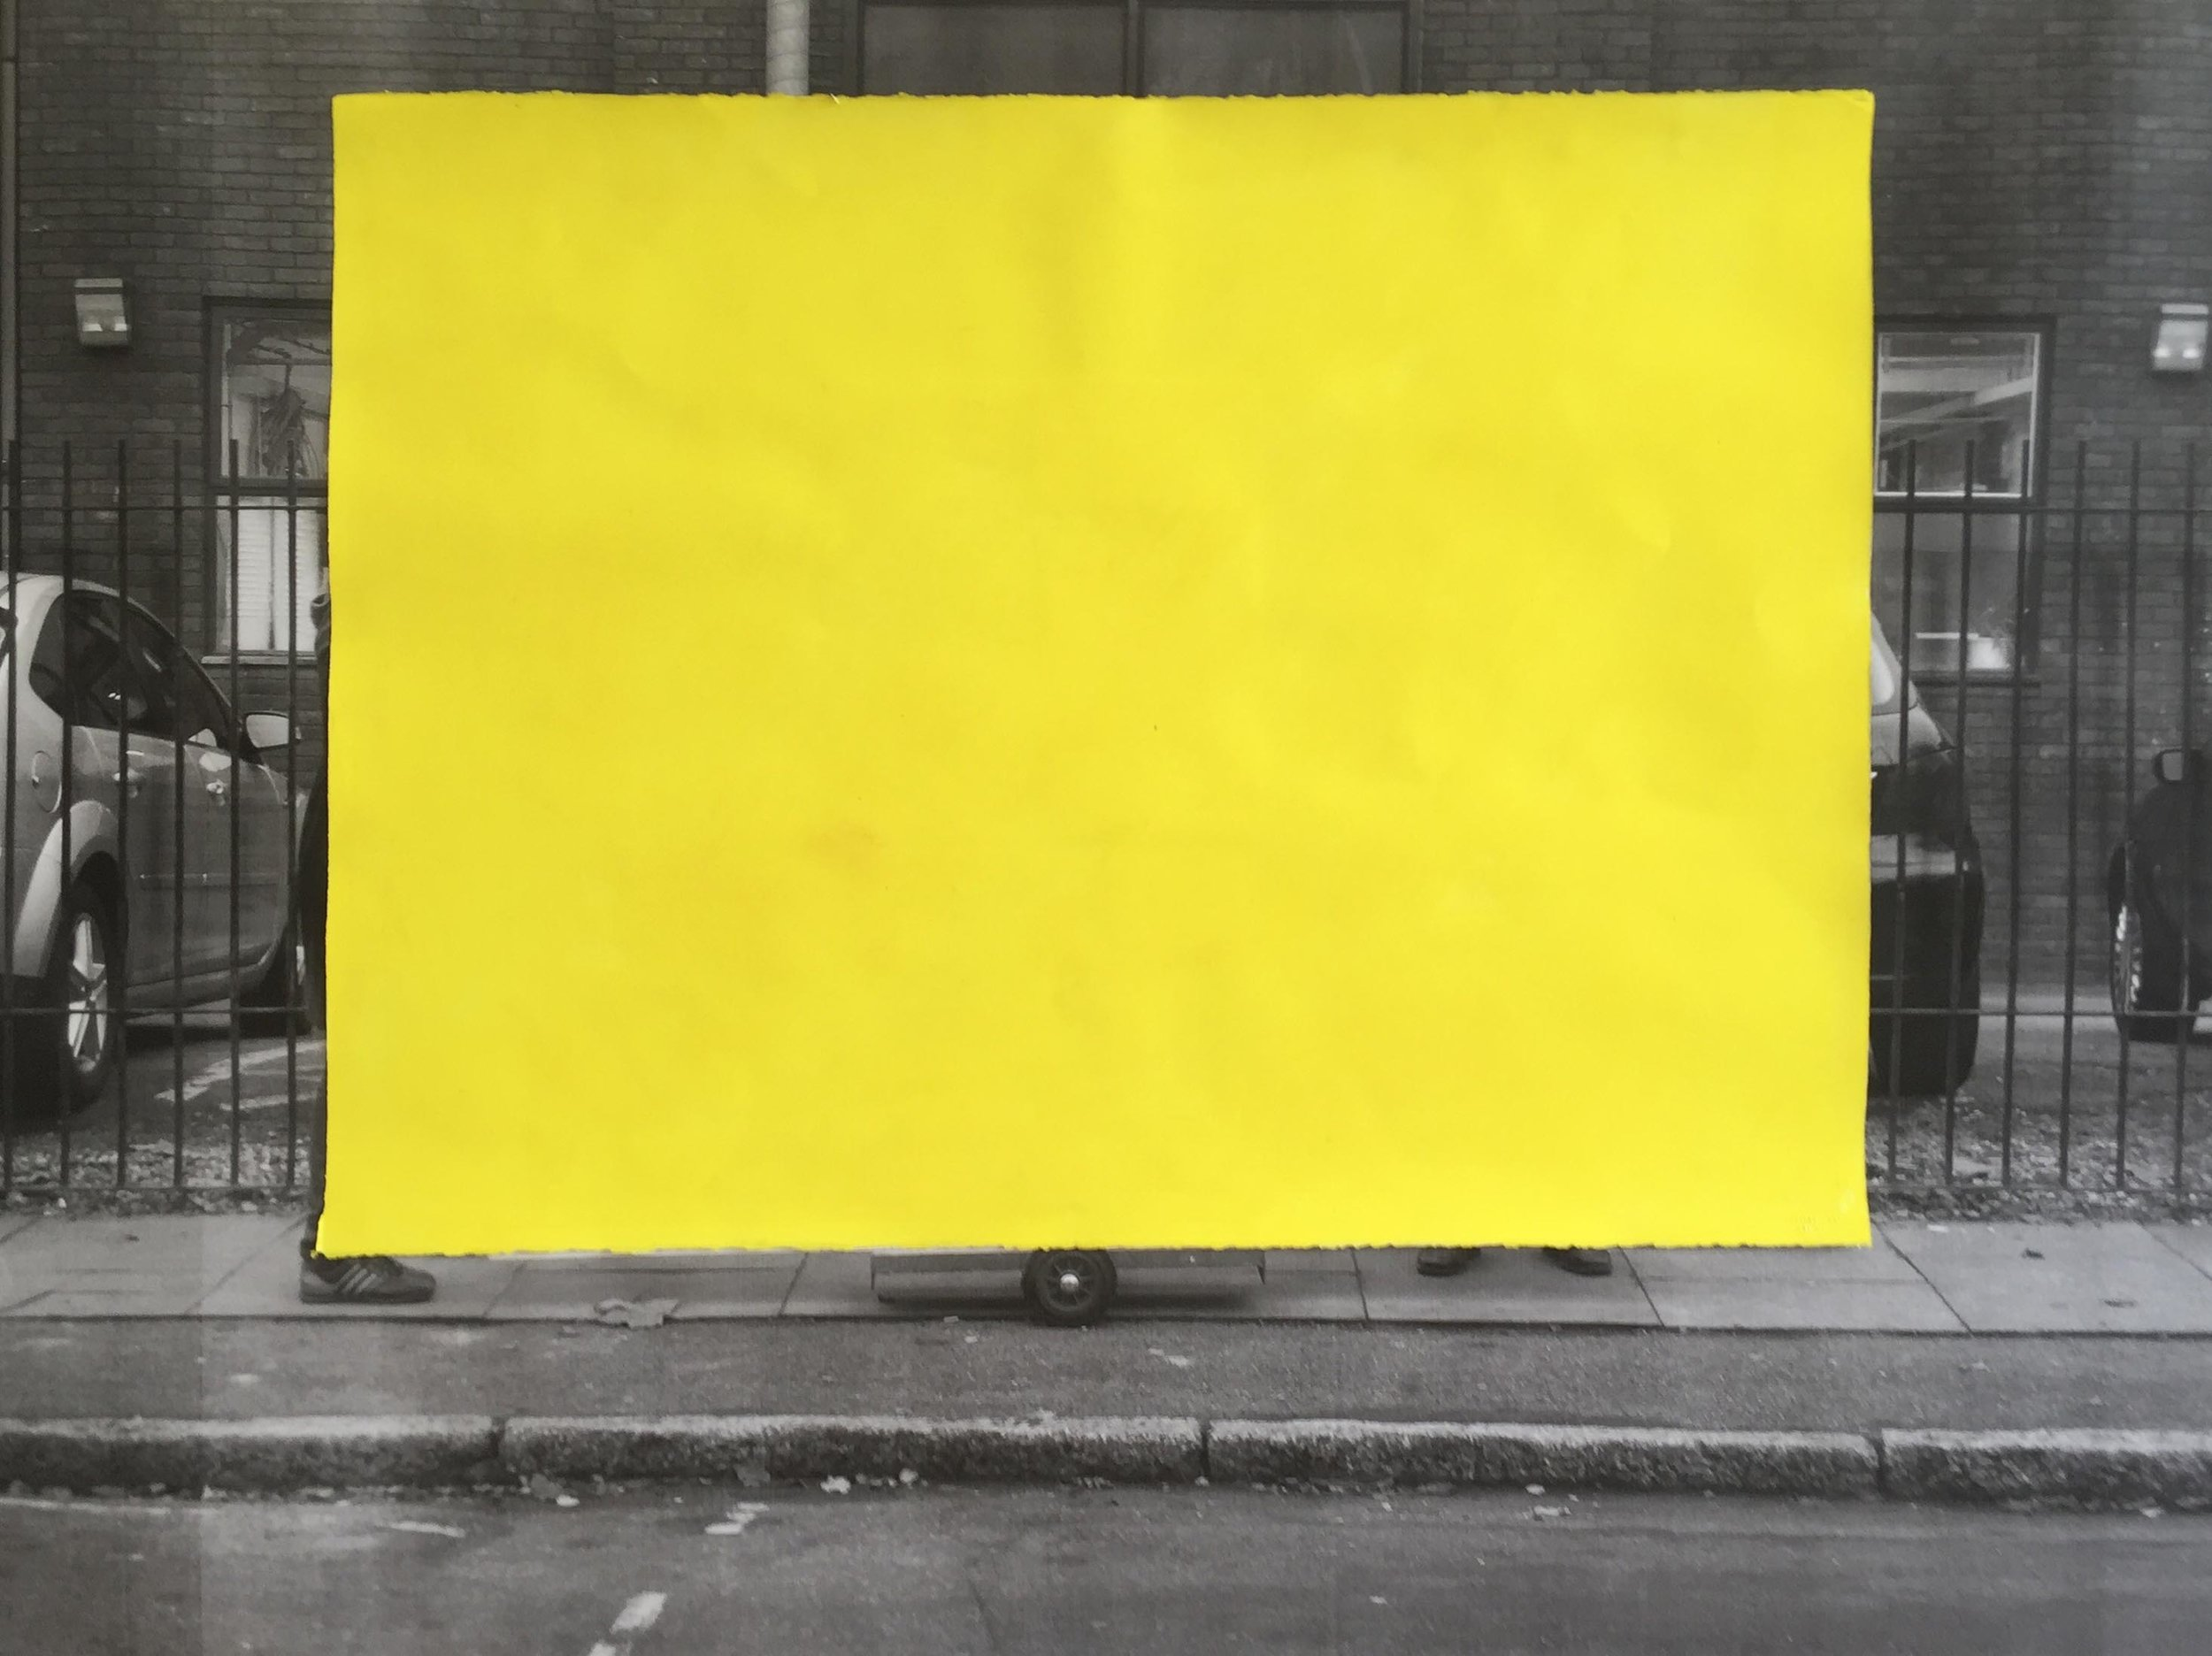 David Thomas,  Taking a monochrome for a walk (yellow) , 2017-18. Acrylic on paper over laser print. Courtesy the artist.